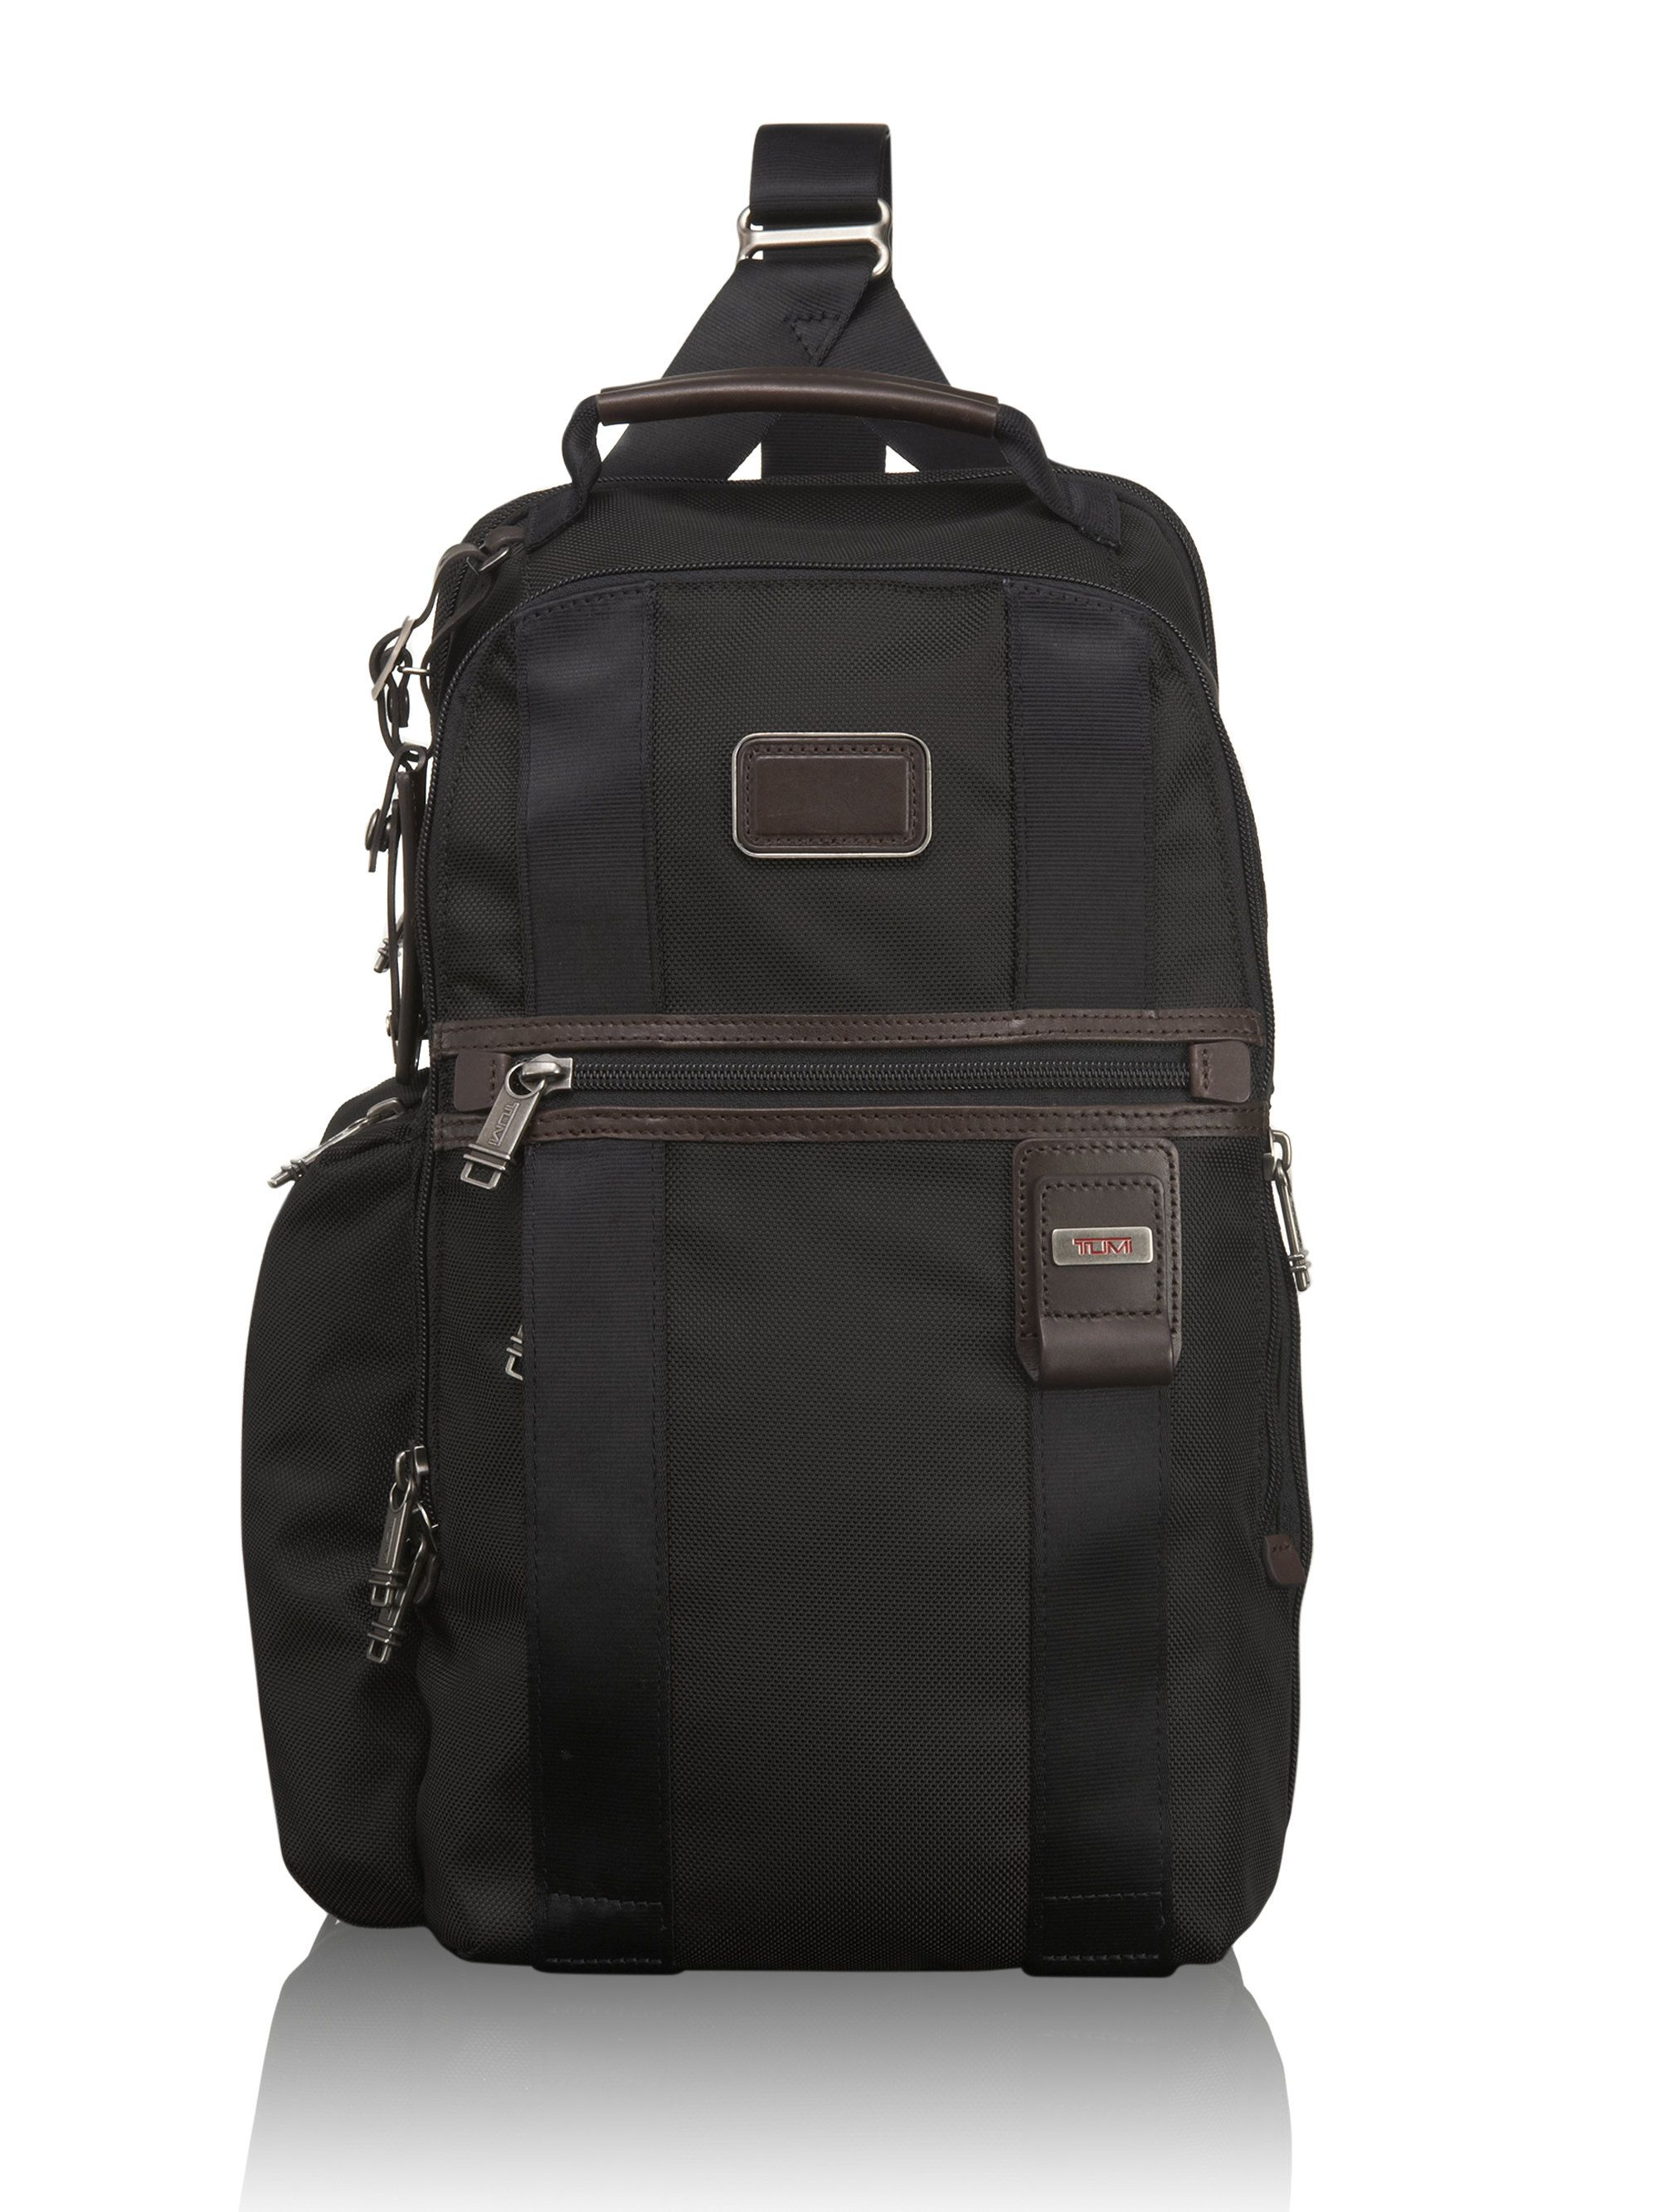 Image result for tumi sling bags   Ballantine s Bags   Pinterest ... b420c6ad5d9